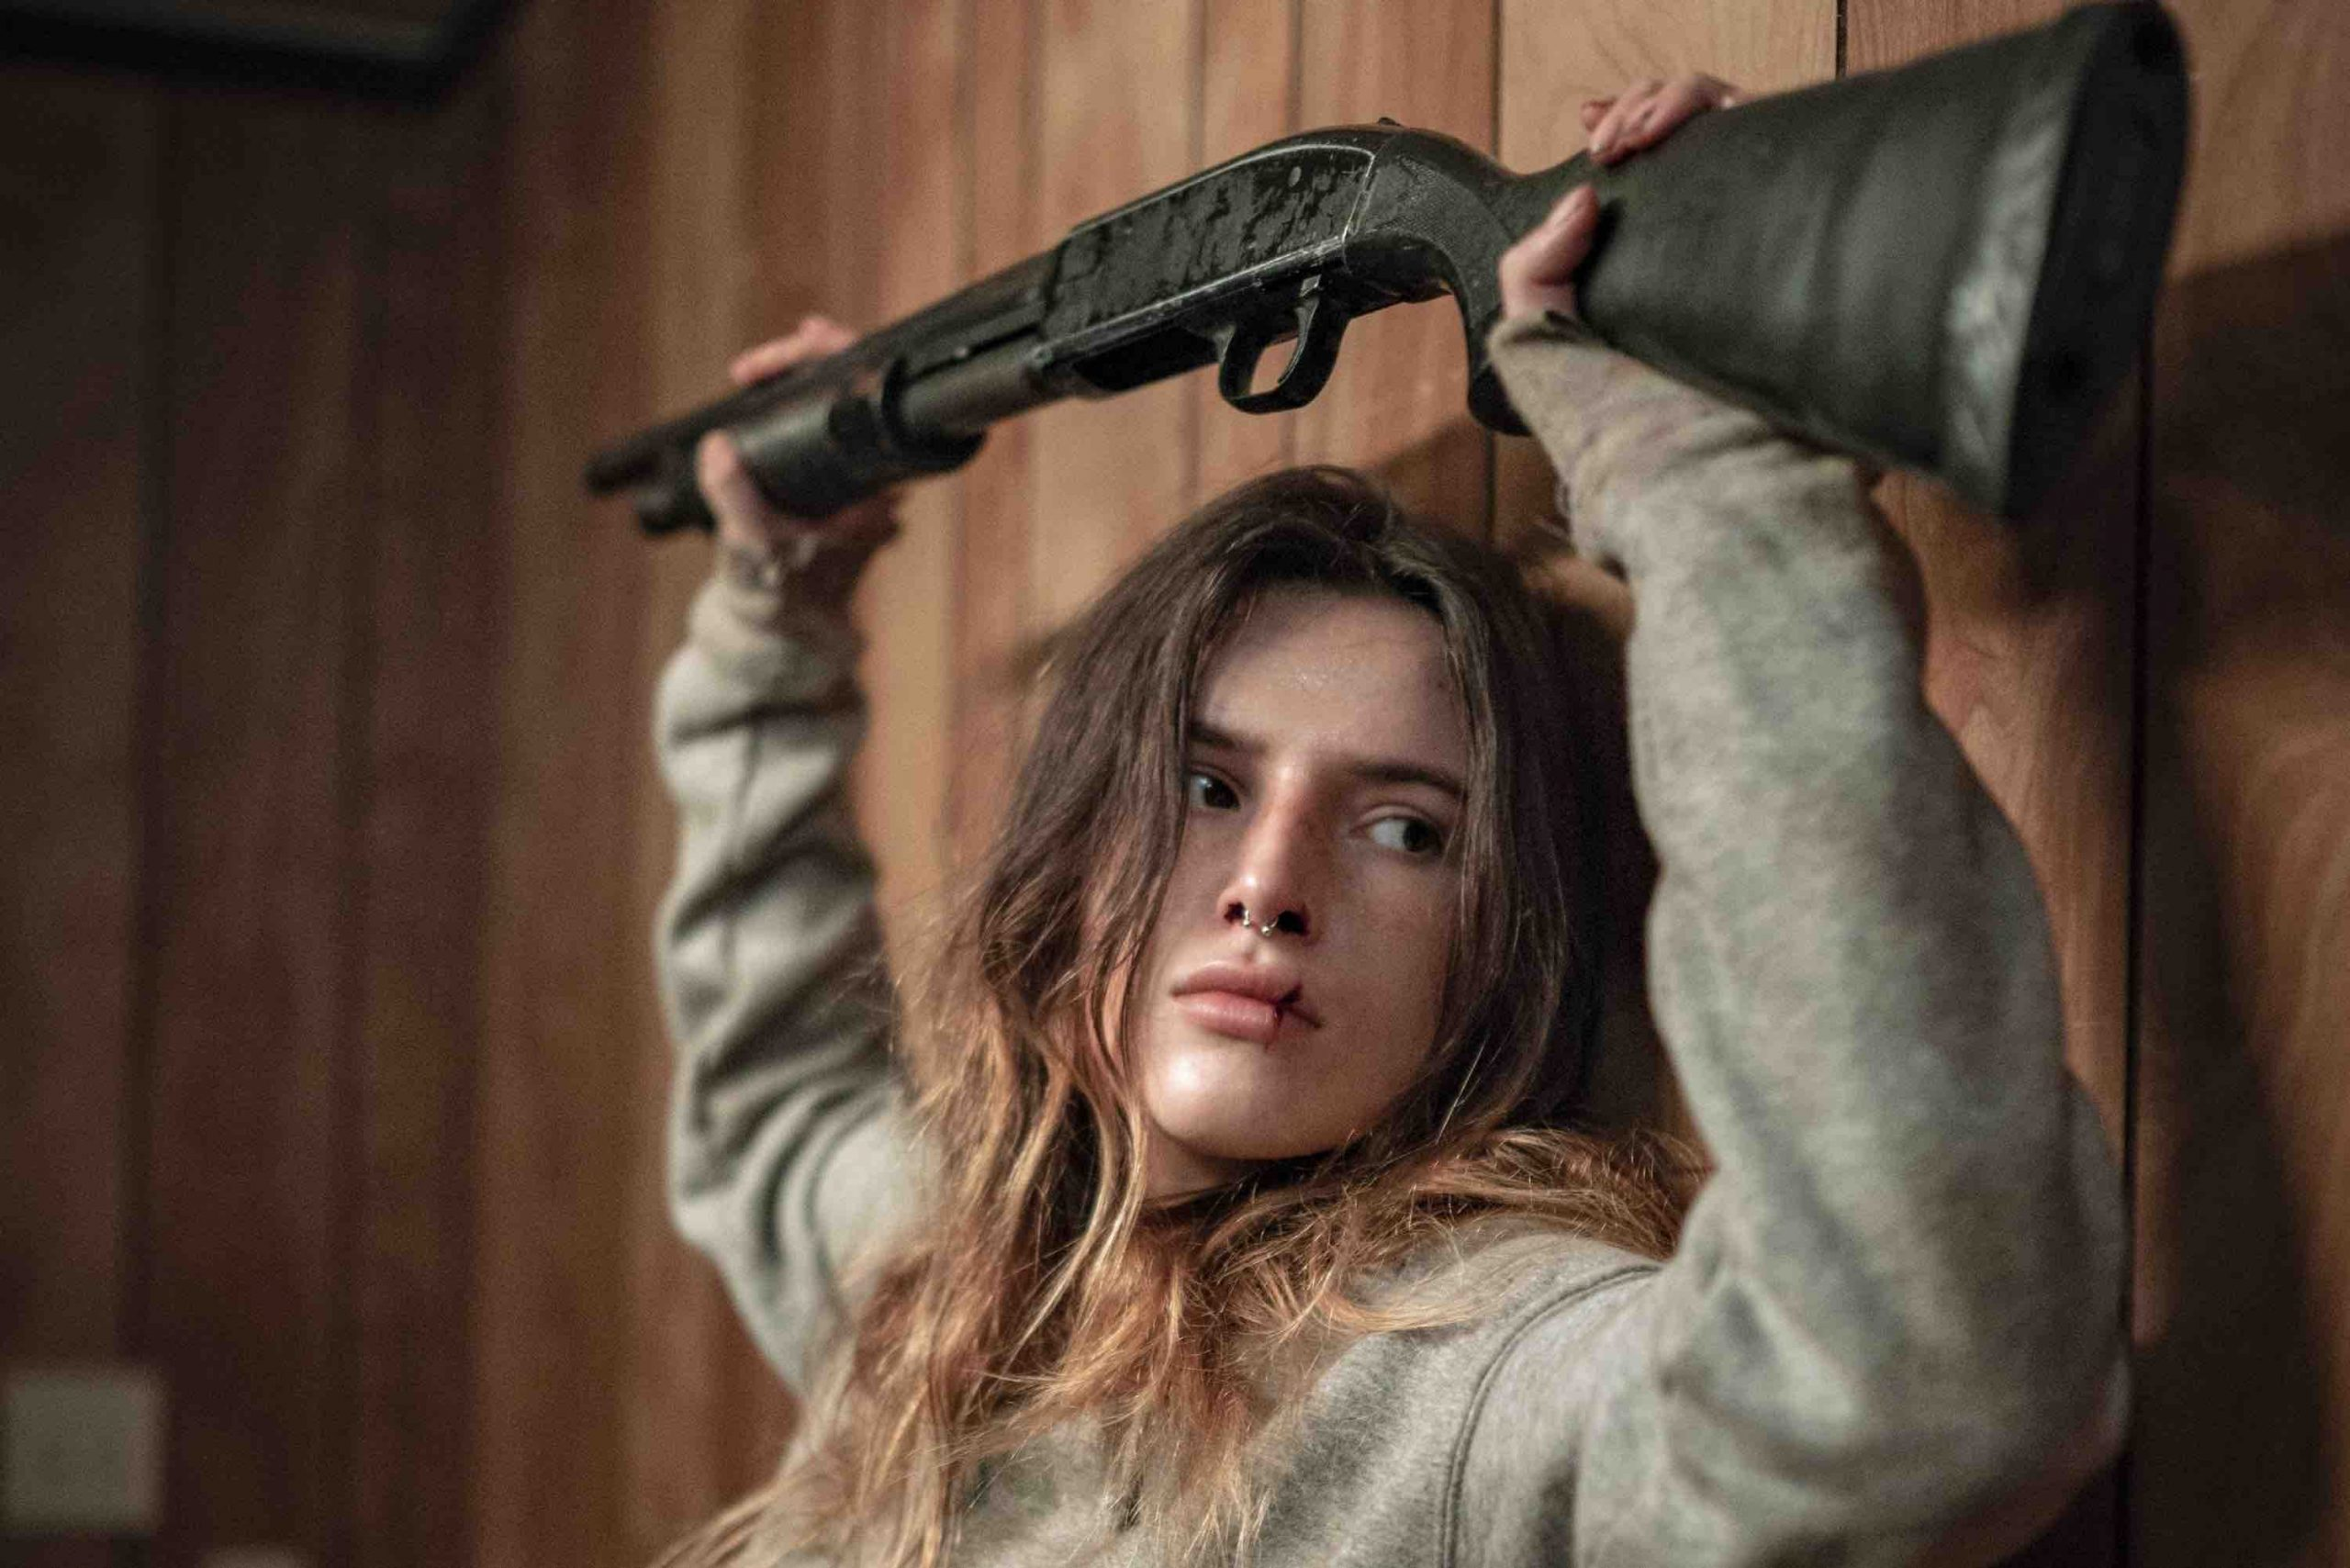 Girl review: Bella Thorne and Mickey Rourke (!) square off in a gritty  revenge thriller [Fantastic Fest/CIFF] - Bad Feeling Magazine